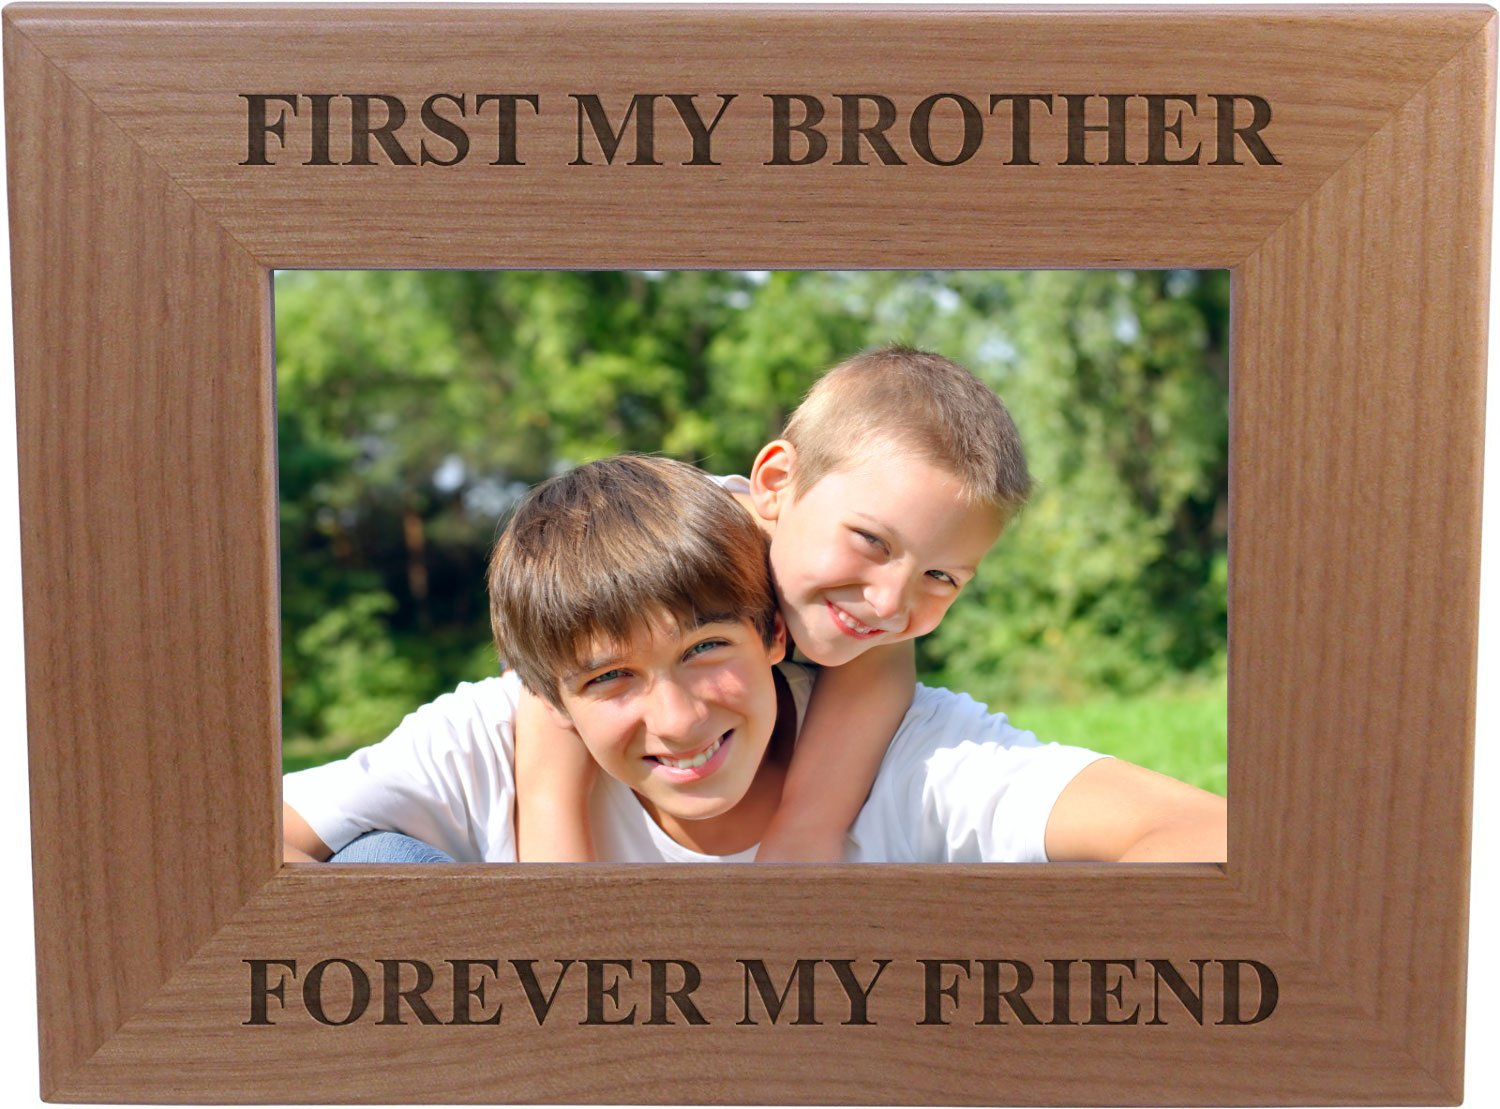 Amazon first my brother forever my friend 4x6 inch wood amazon first my brother forever my friend 4x6 inch wood picture frame great gift for birthday or christmas gift for brother brothers baby jeuxipadfo Choice Image